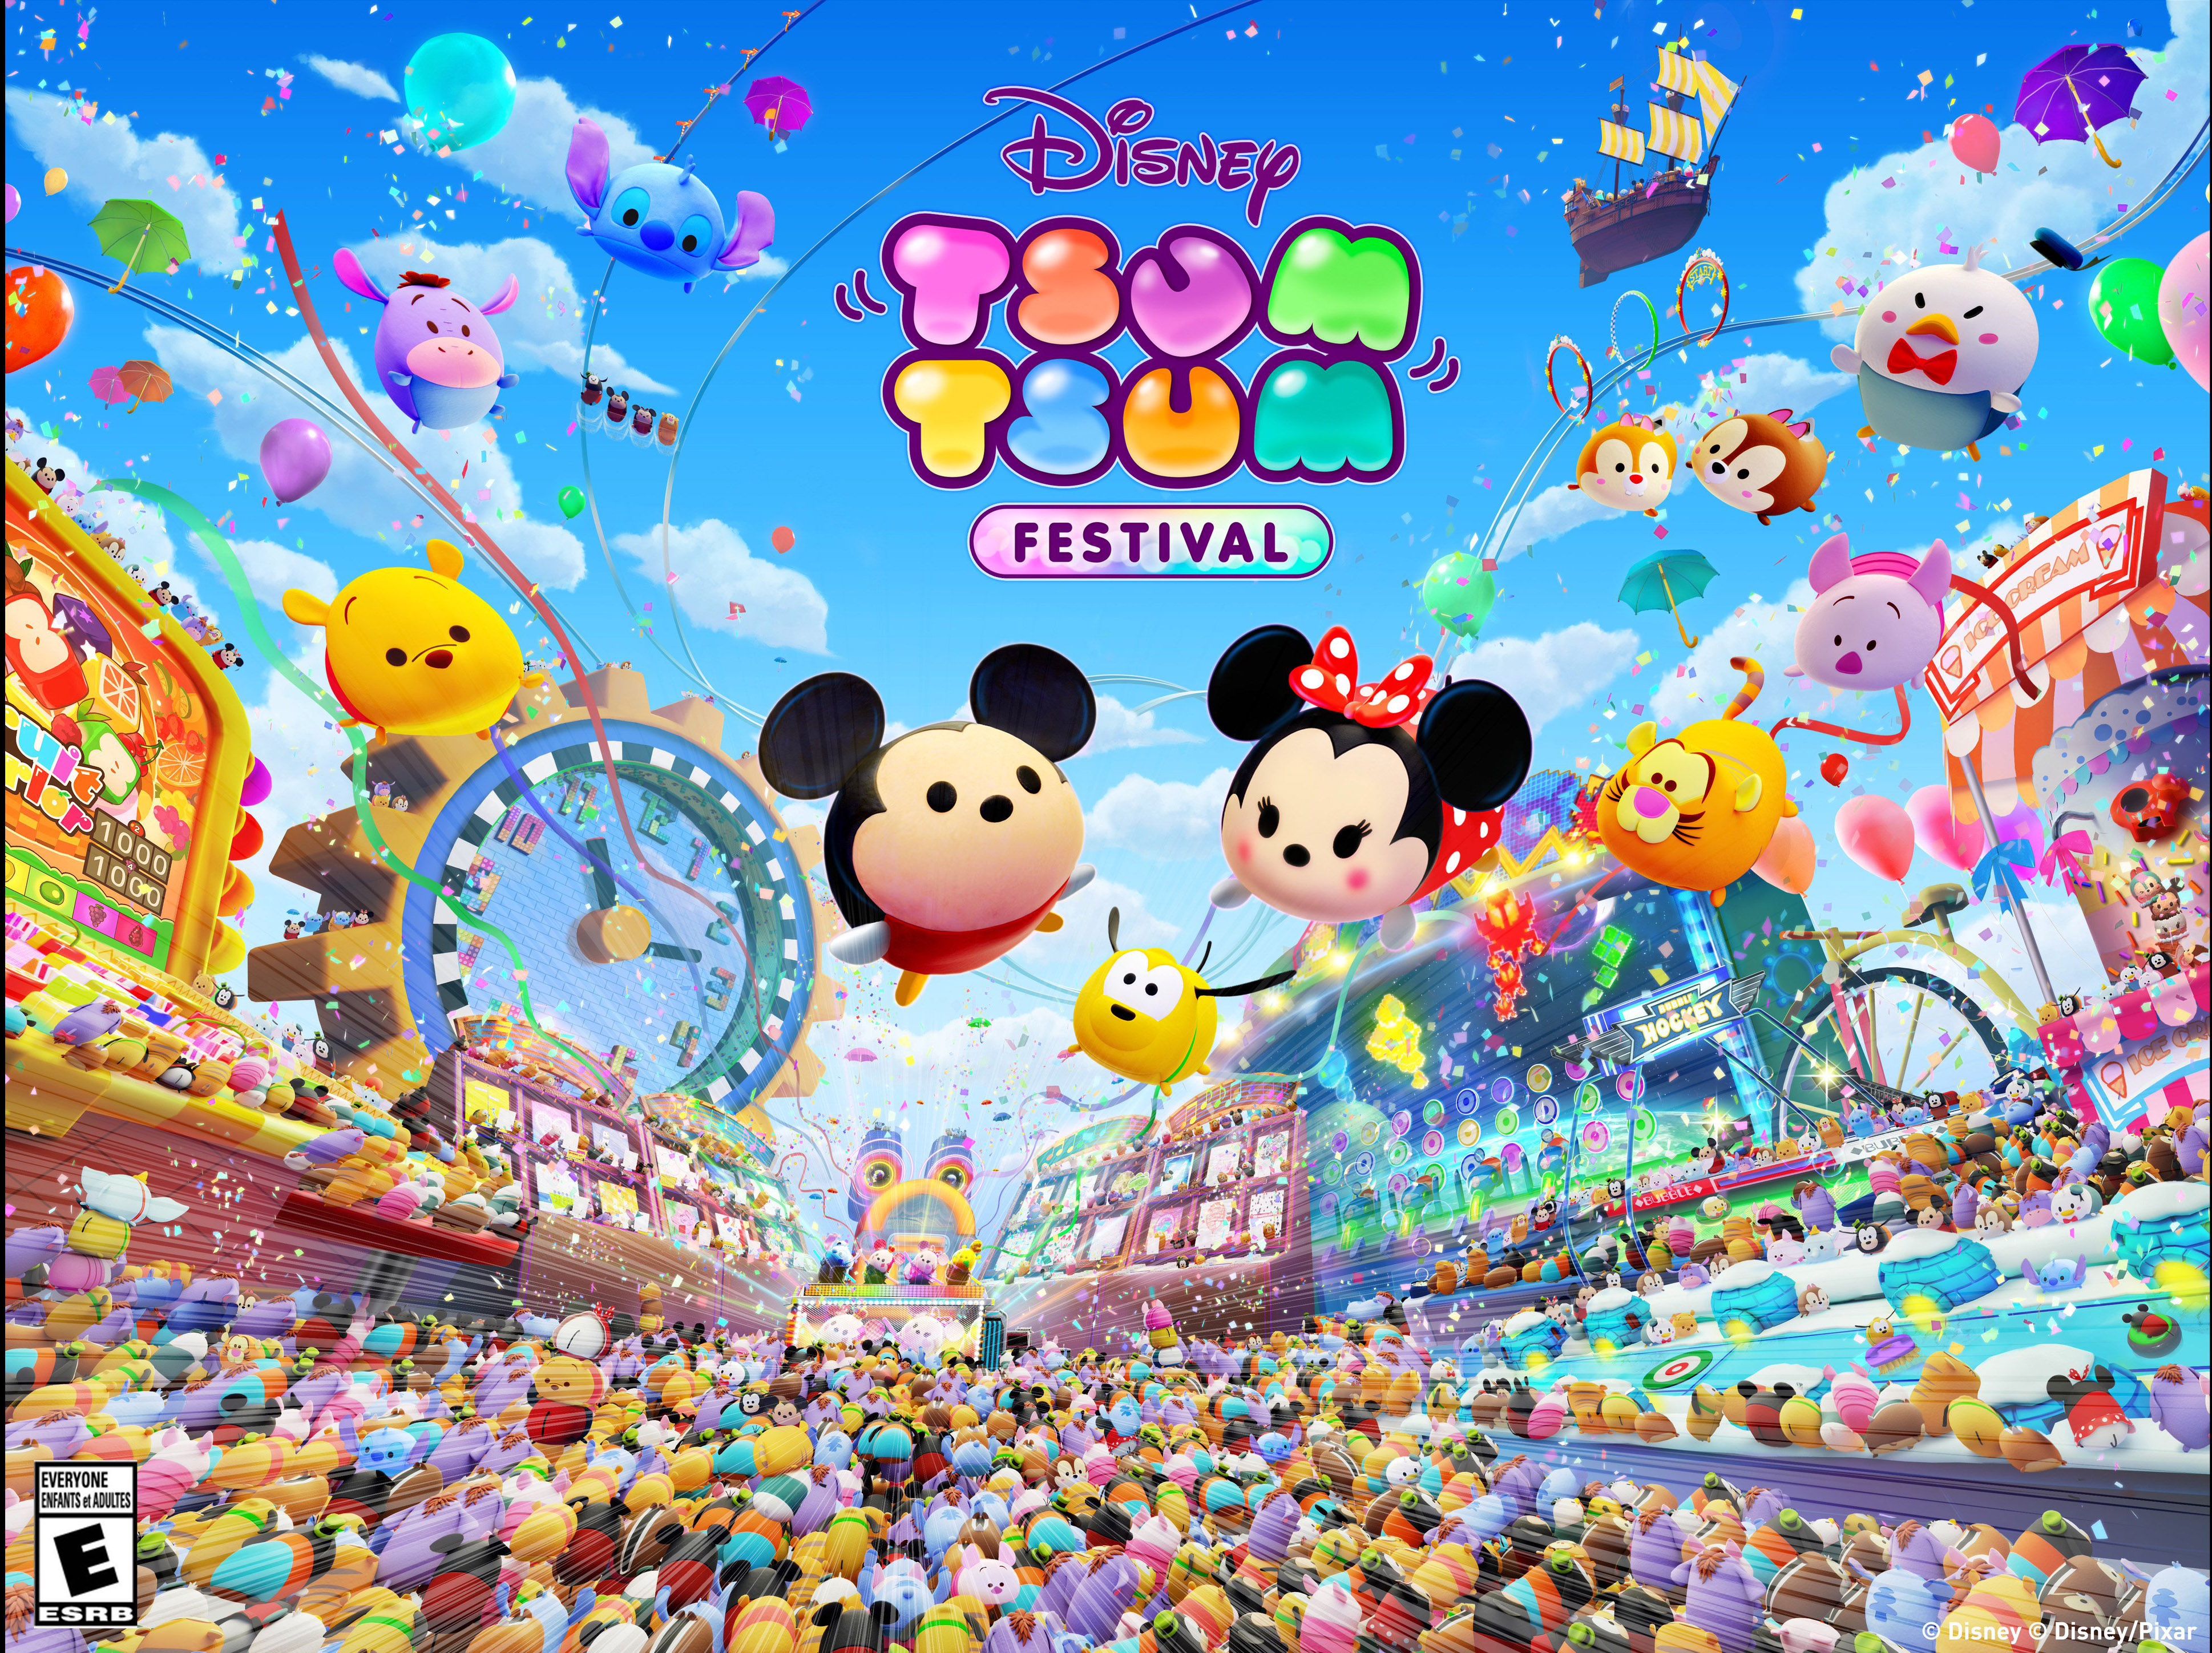 Disney TSUM TSUM FESTIVAL Now On The Nintendo Switch 1